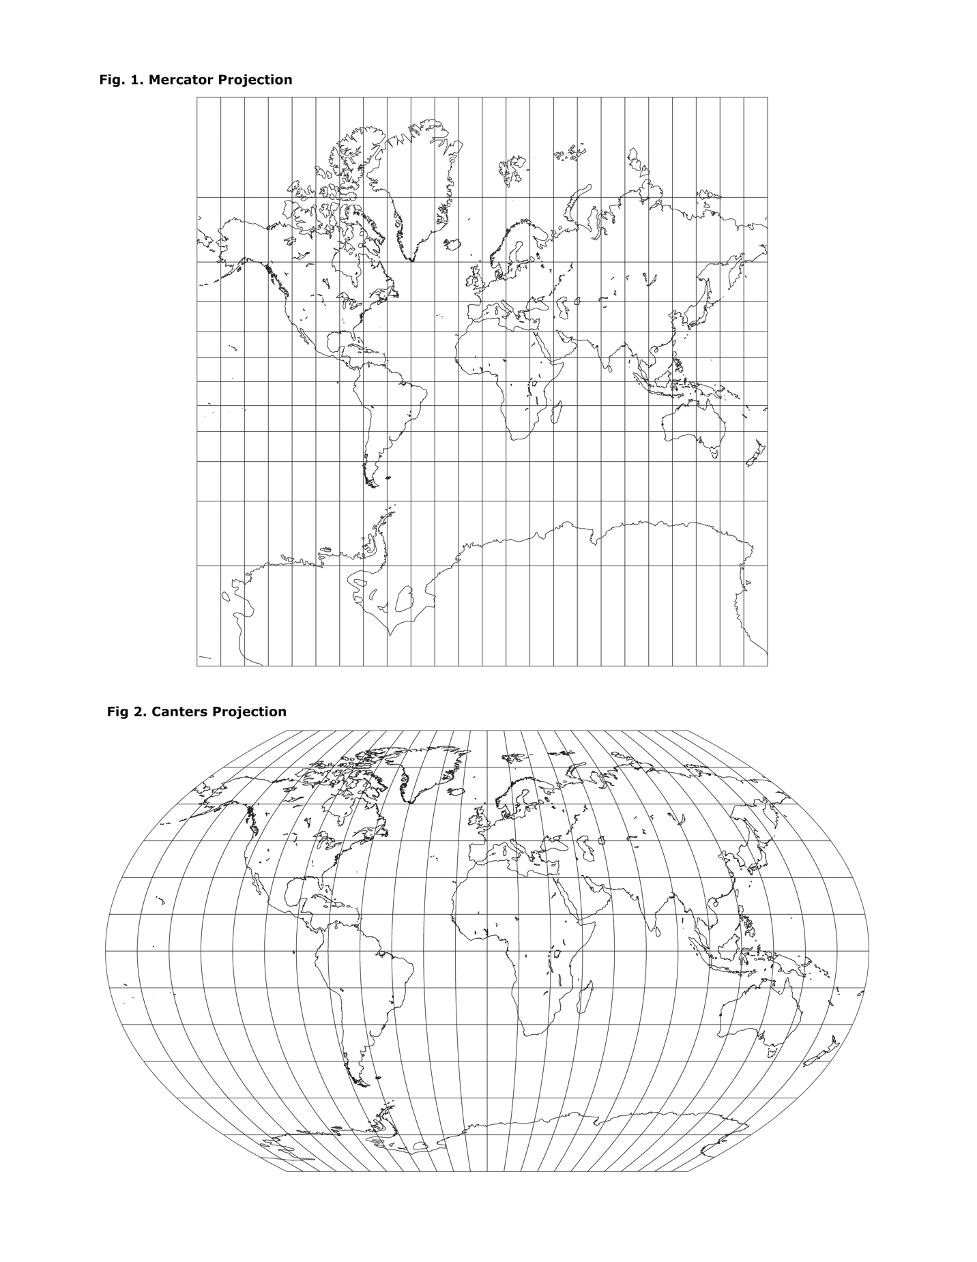 Fig. 1. Mercator Projection he Fig 2. Canters Projection AR u 7 7